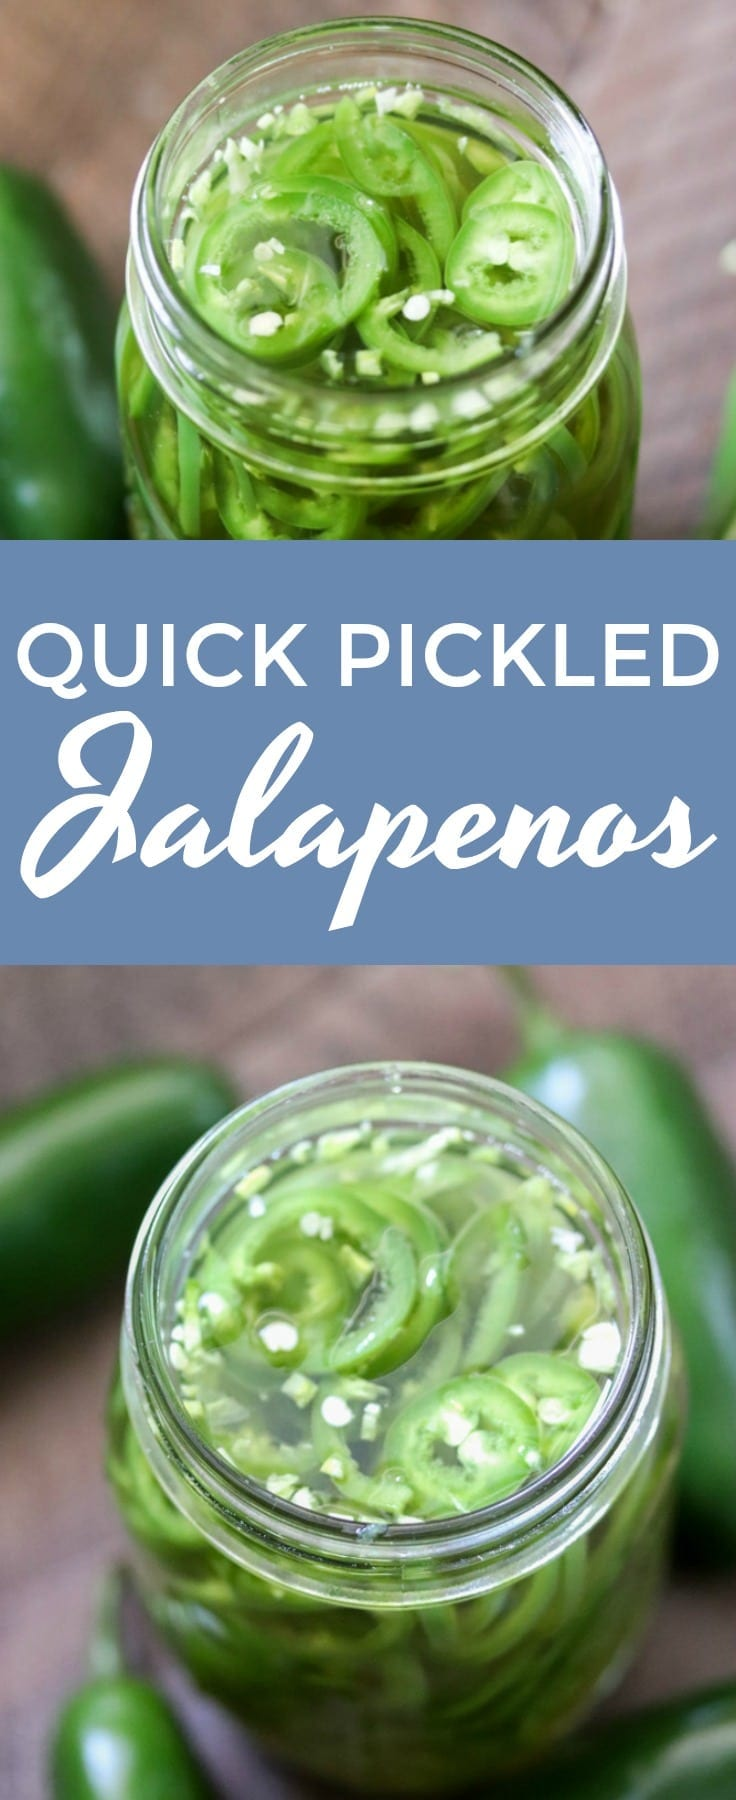 Quick pickled jalapeños are a life saver for jalapeno fans that want a pickled jalapeños right now! These pickled jalapeños are ready for use in all of your recipes in under an hour.